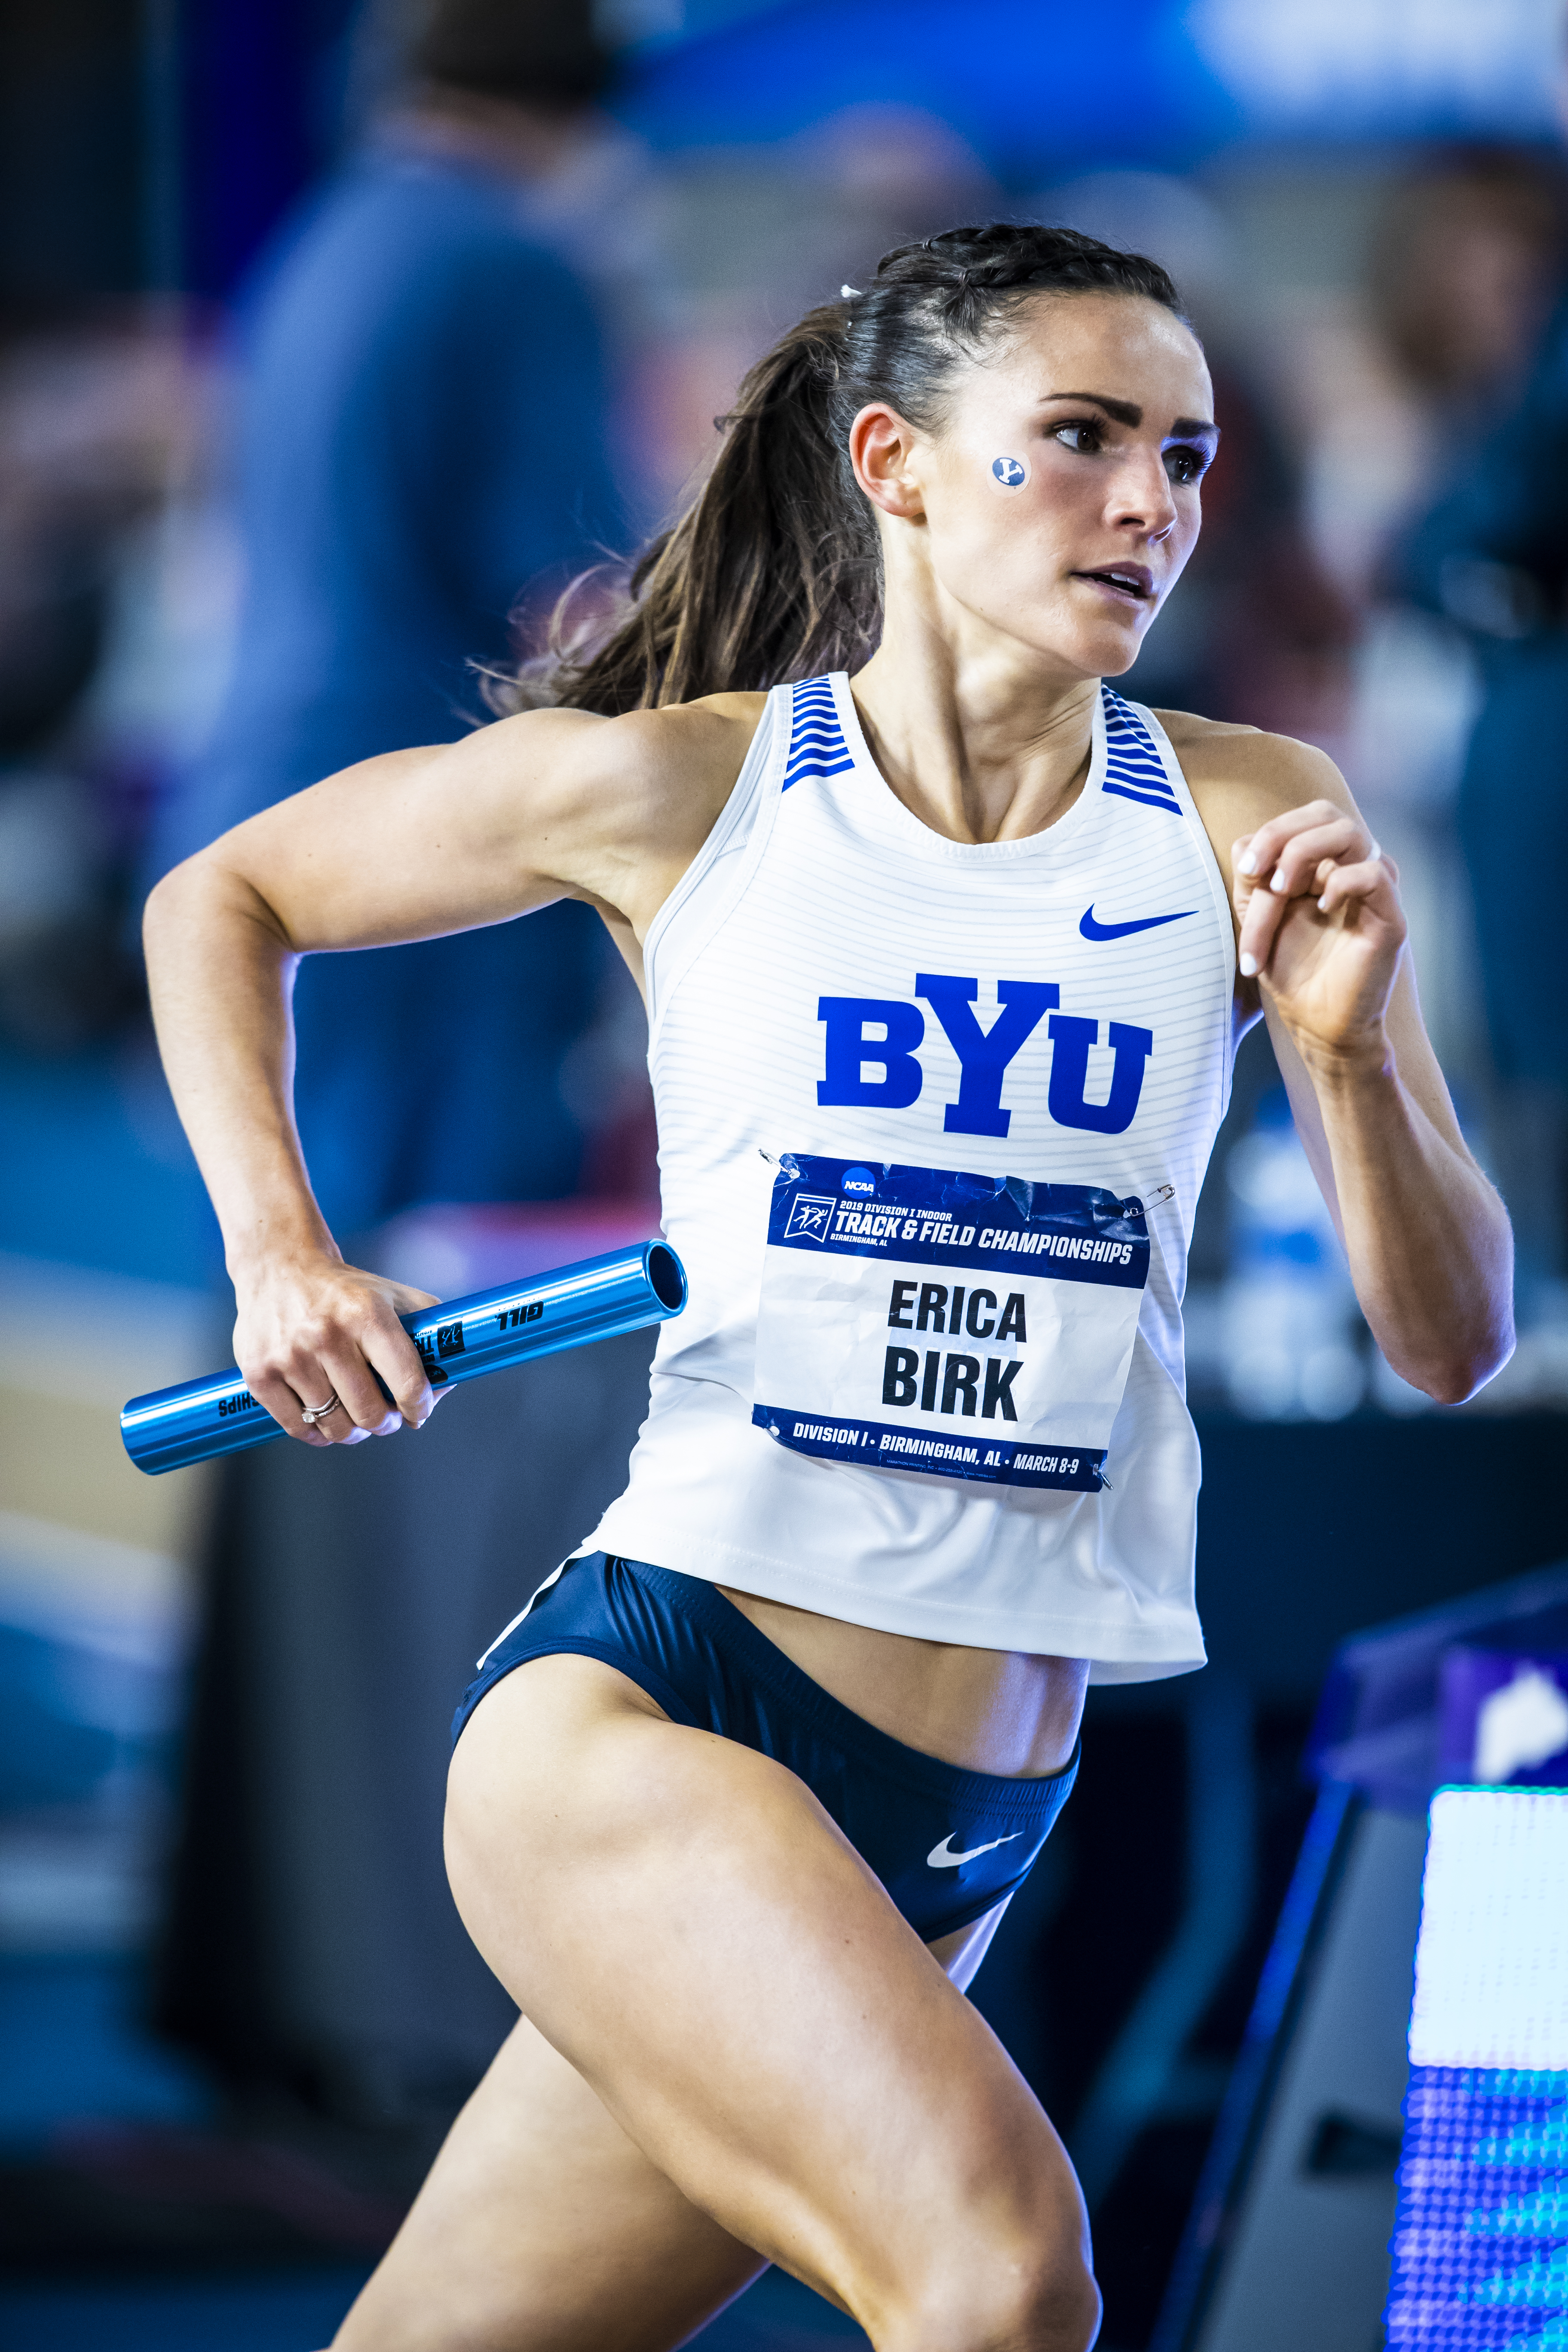 BYU distance runner Erica Birk-Jarvis claimed multiple All America honors at the 2019 NCAA Indoor Track and Field Championships. She is a returned missionary and a mother.